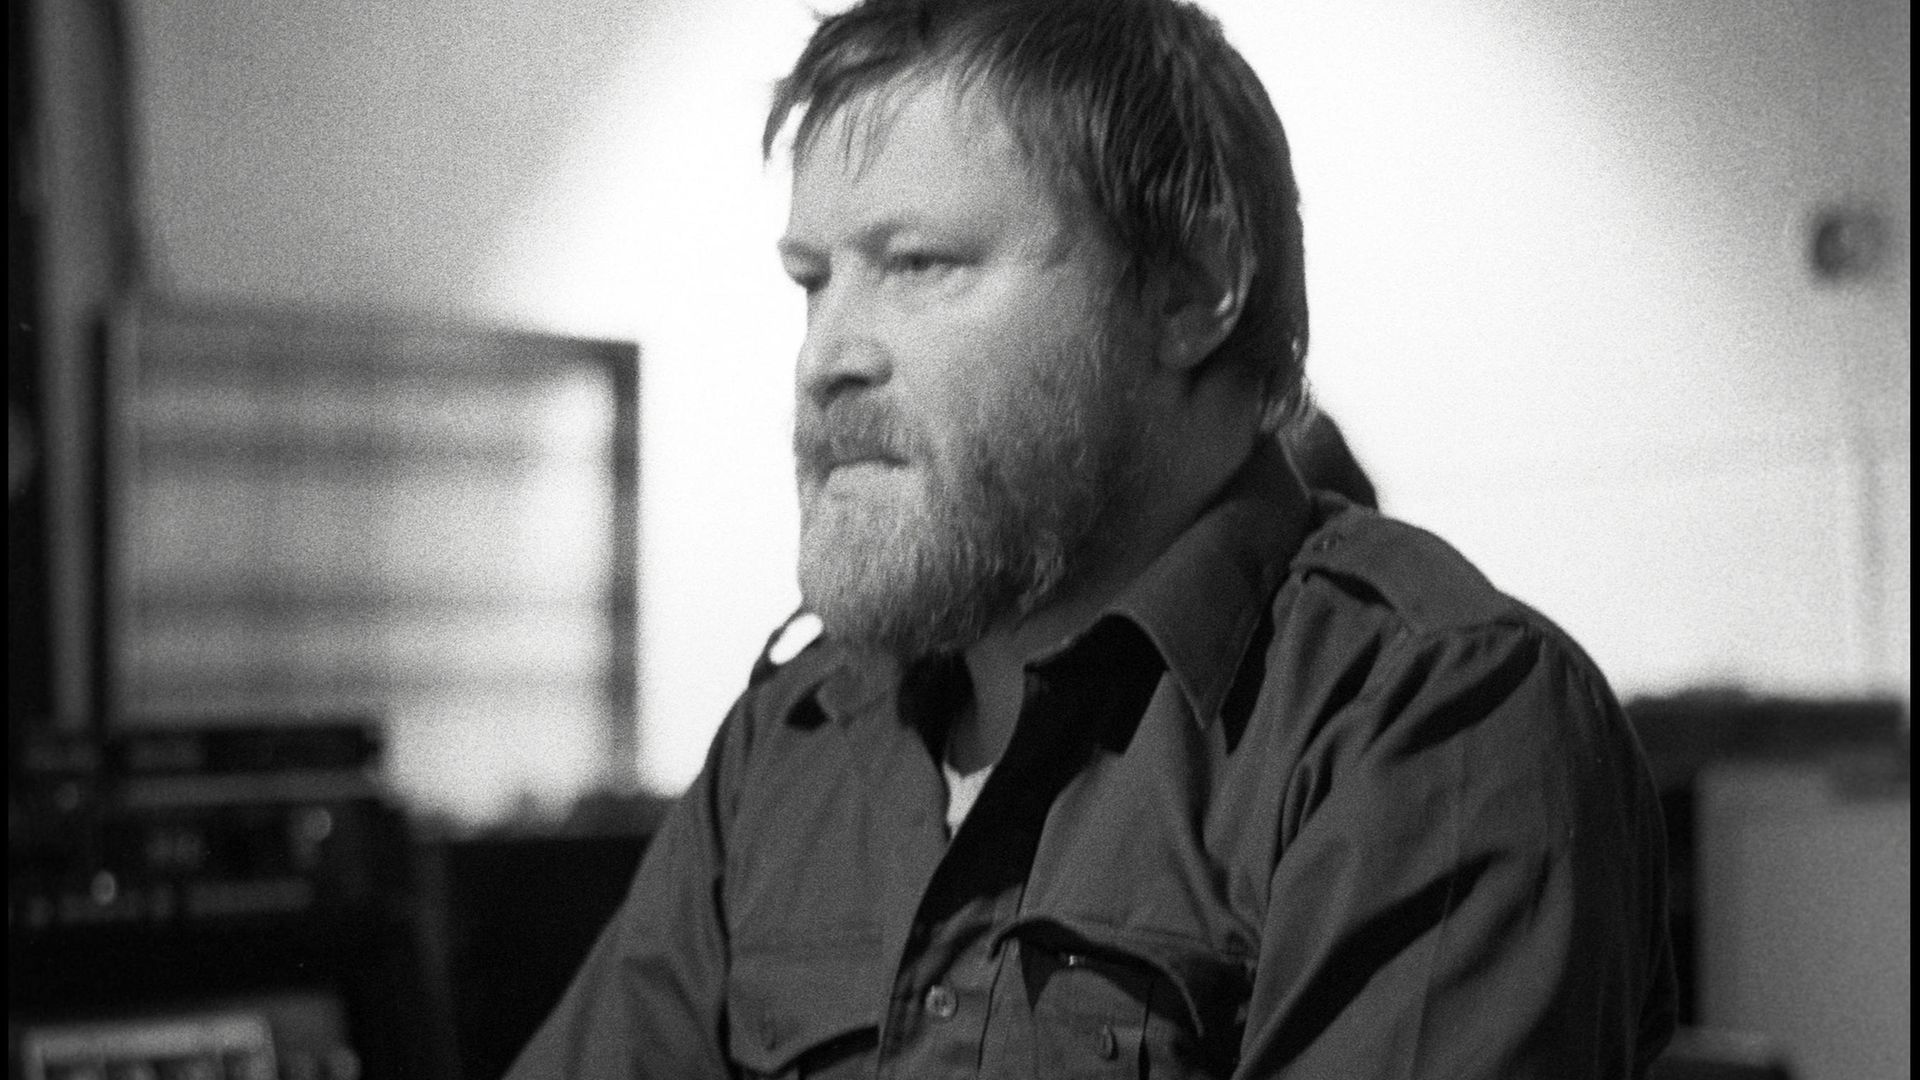 Conny Plank at work by the mixing desk in the control room of his recording studio at Wolperath in 1982 - Credit: Redferns